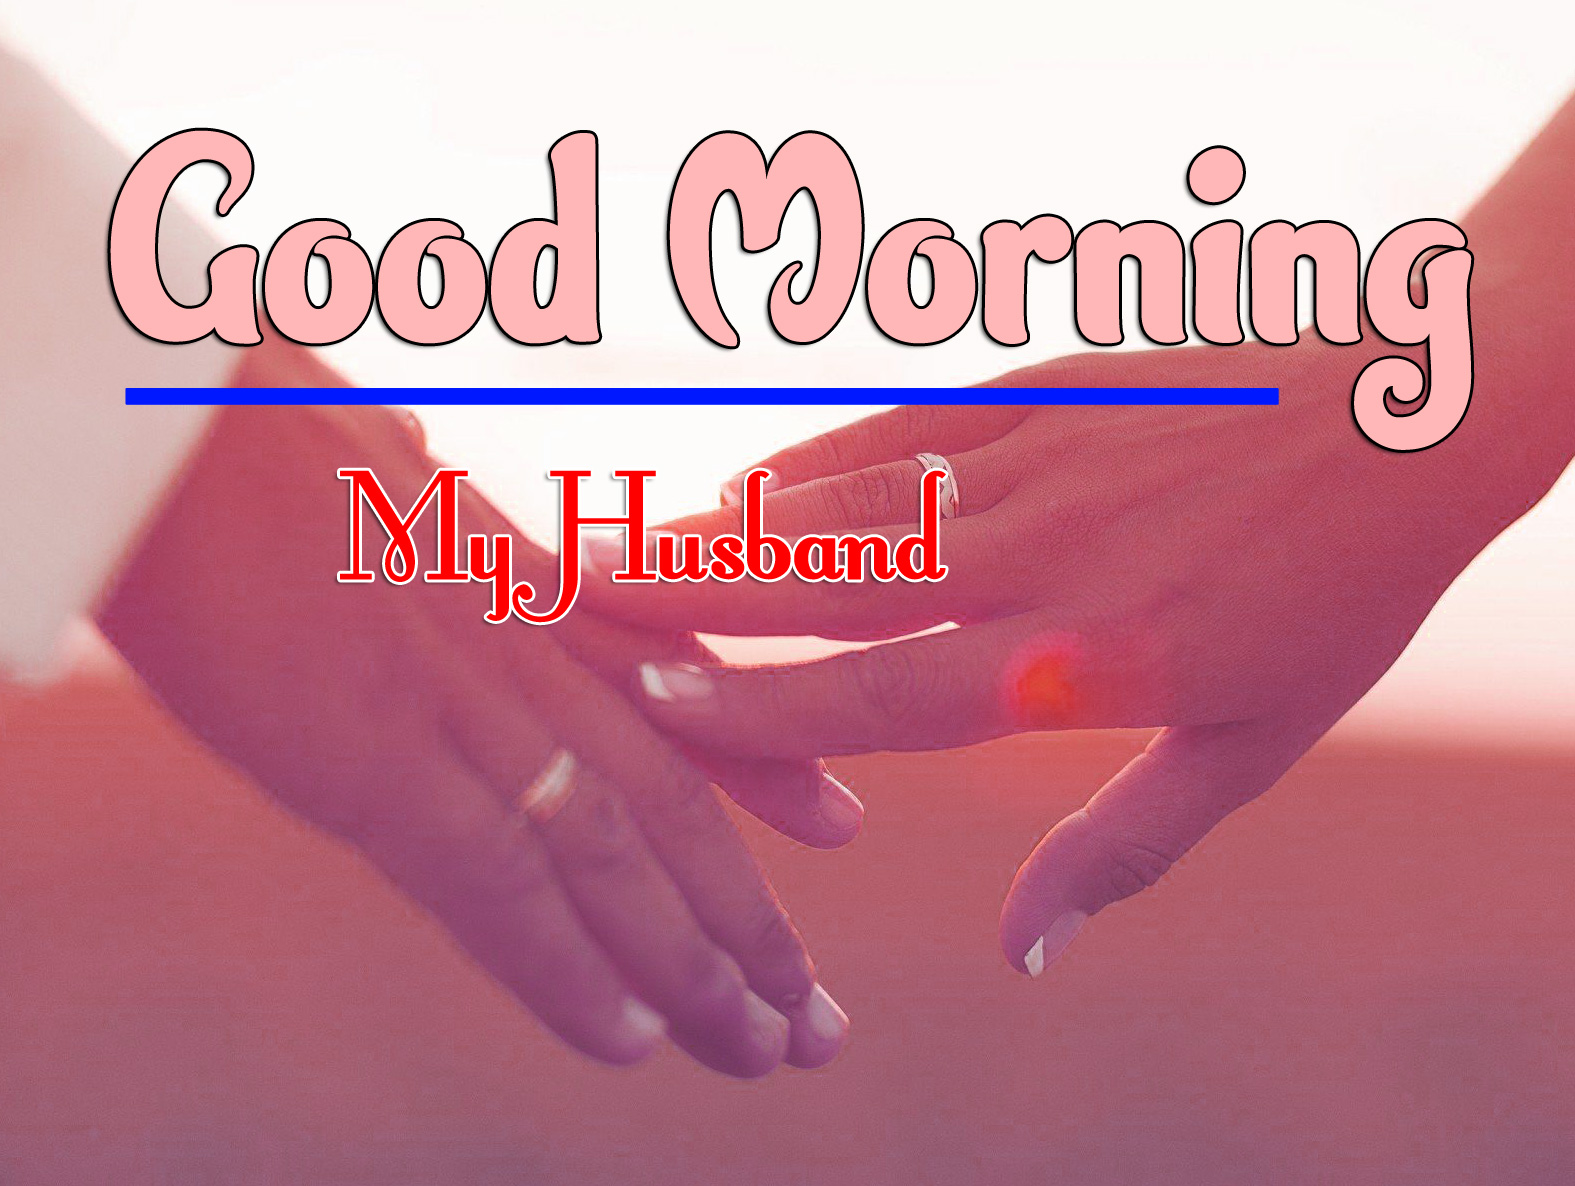 Husband Good Morning Images 2